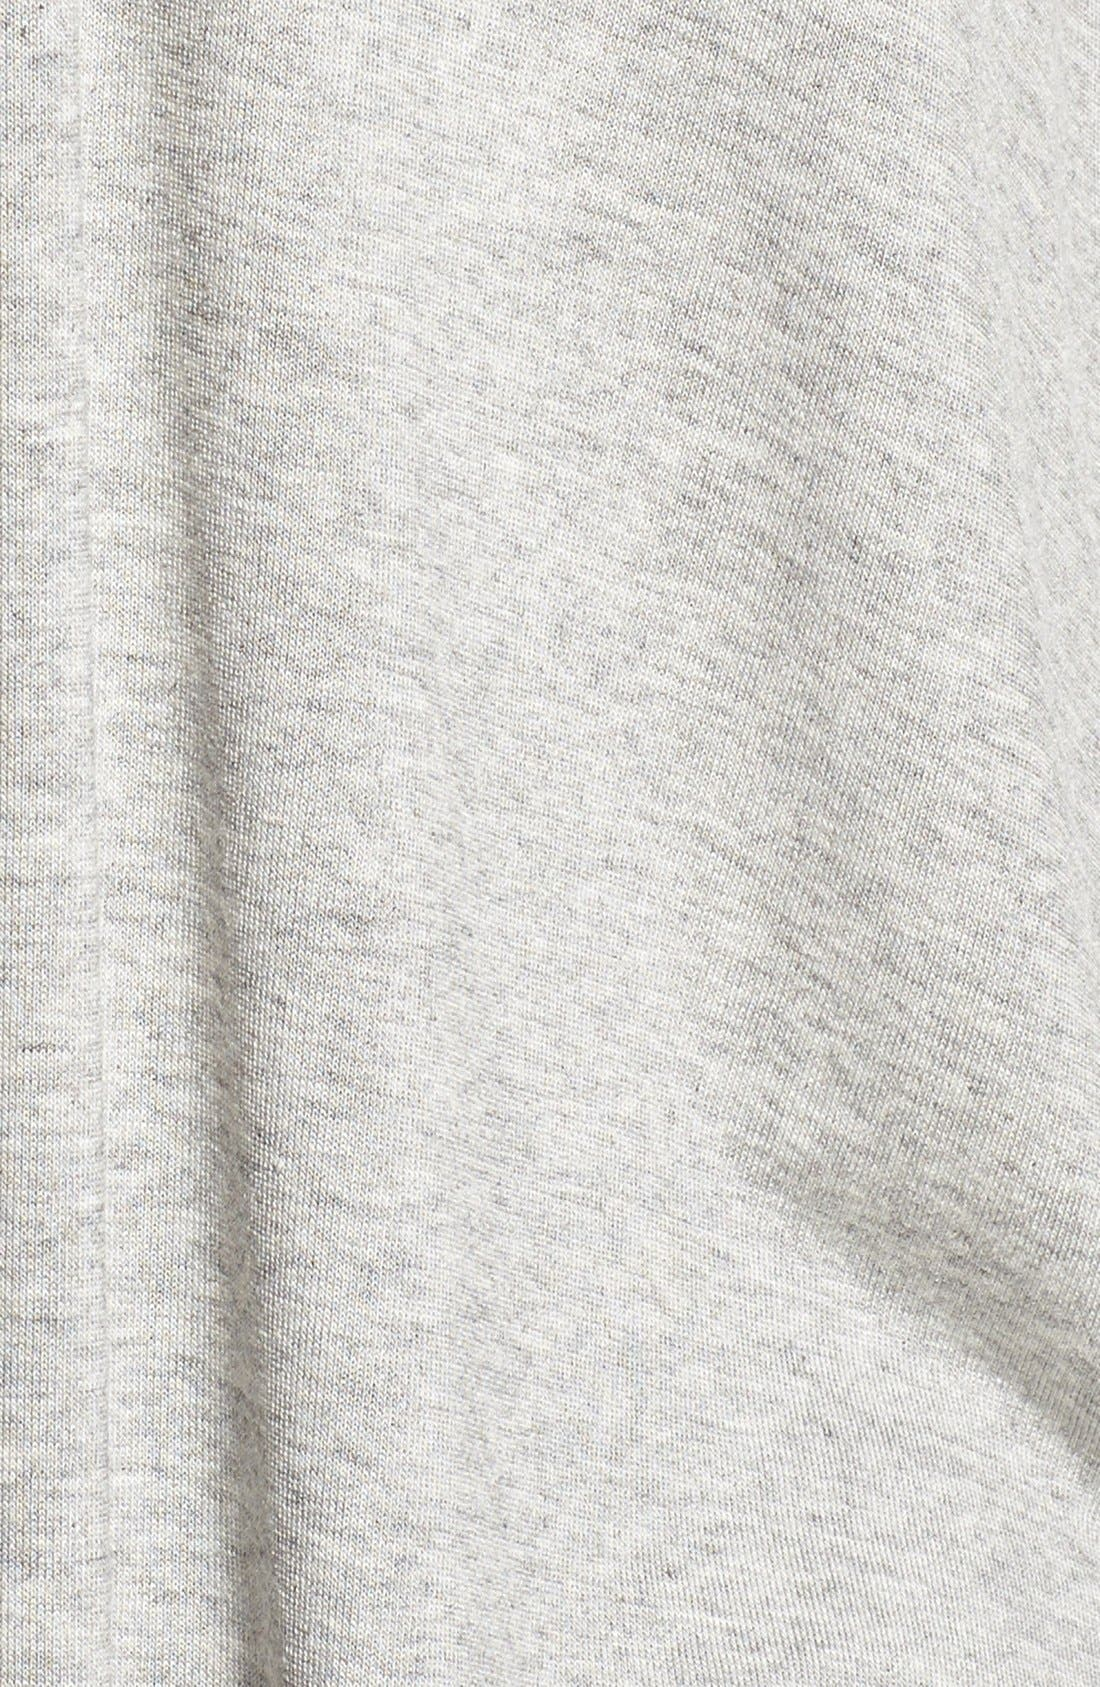 Lace-Up Back Tee,                             Alternate thumbnail 5, color,                             Heather Grey